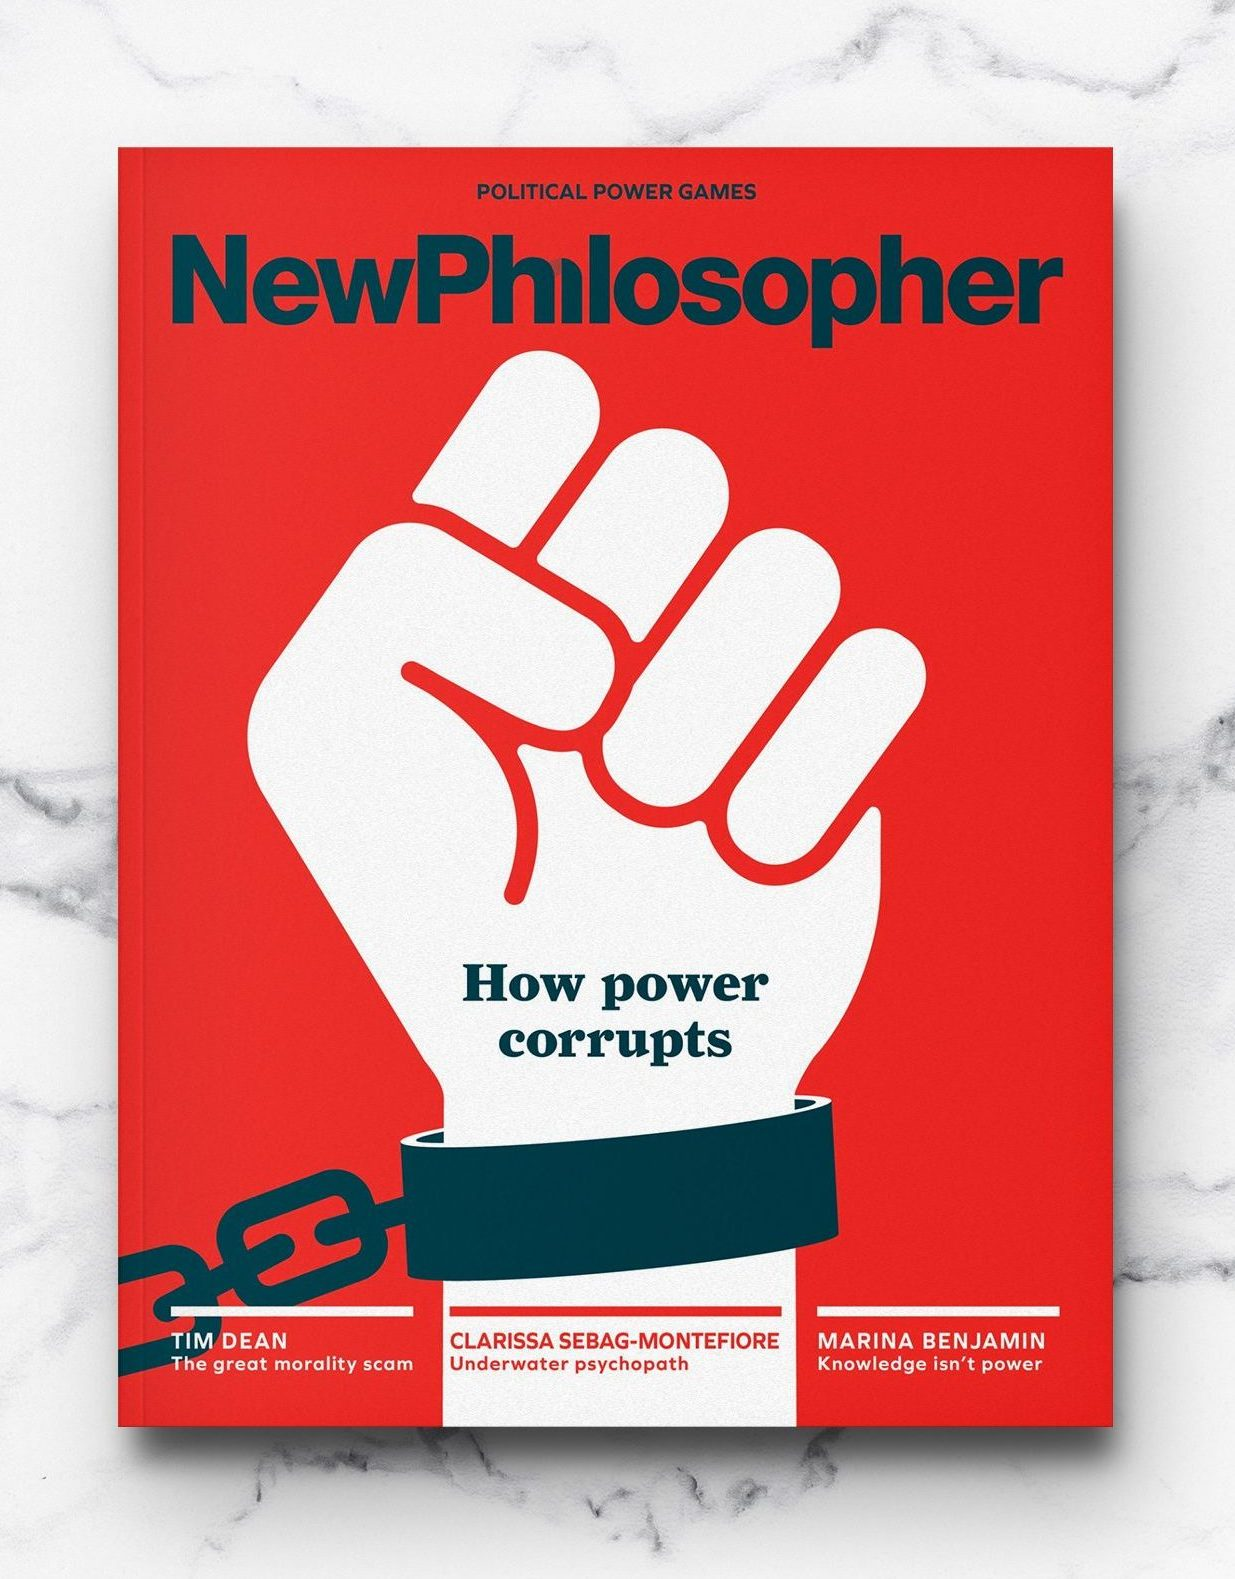 New philosopher magazine ccuart Images